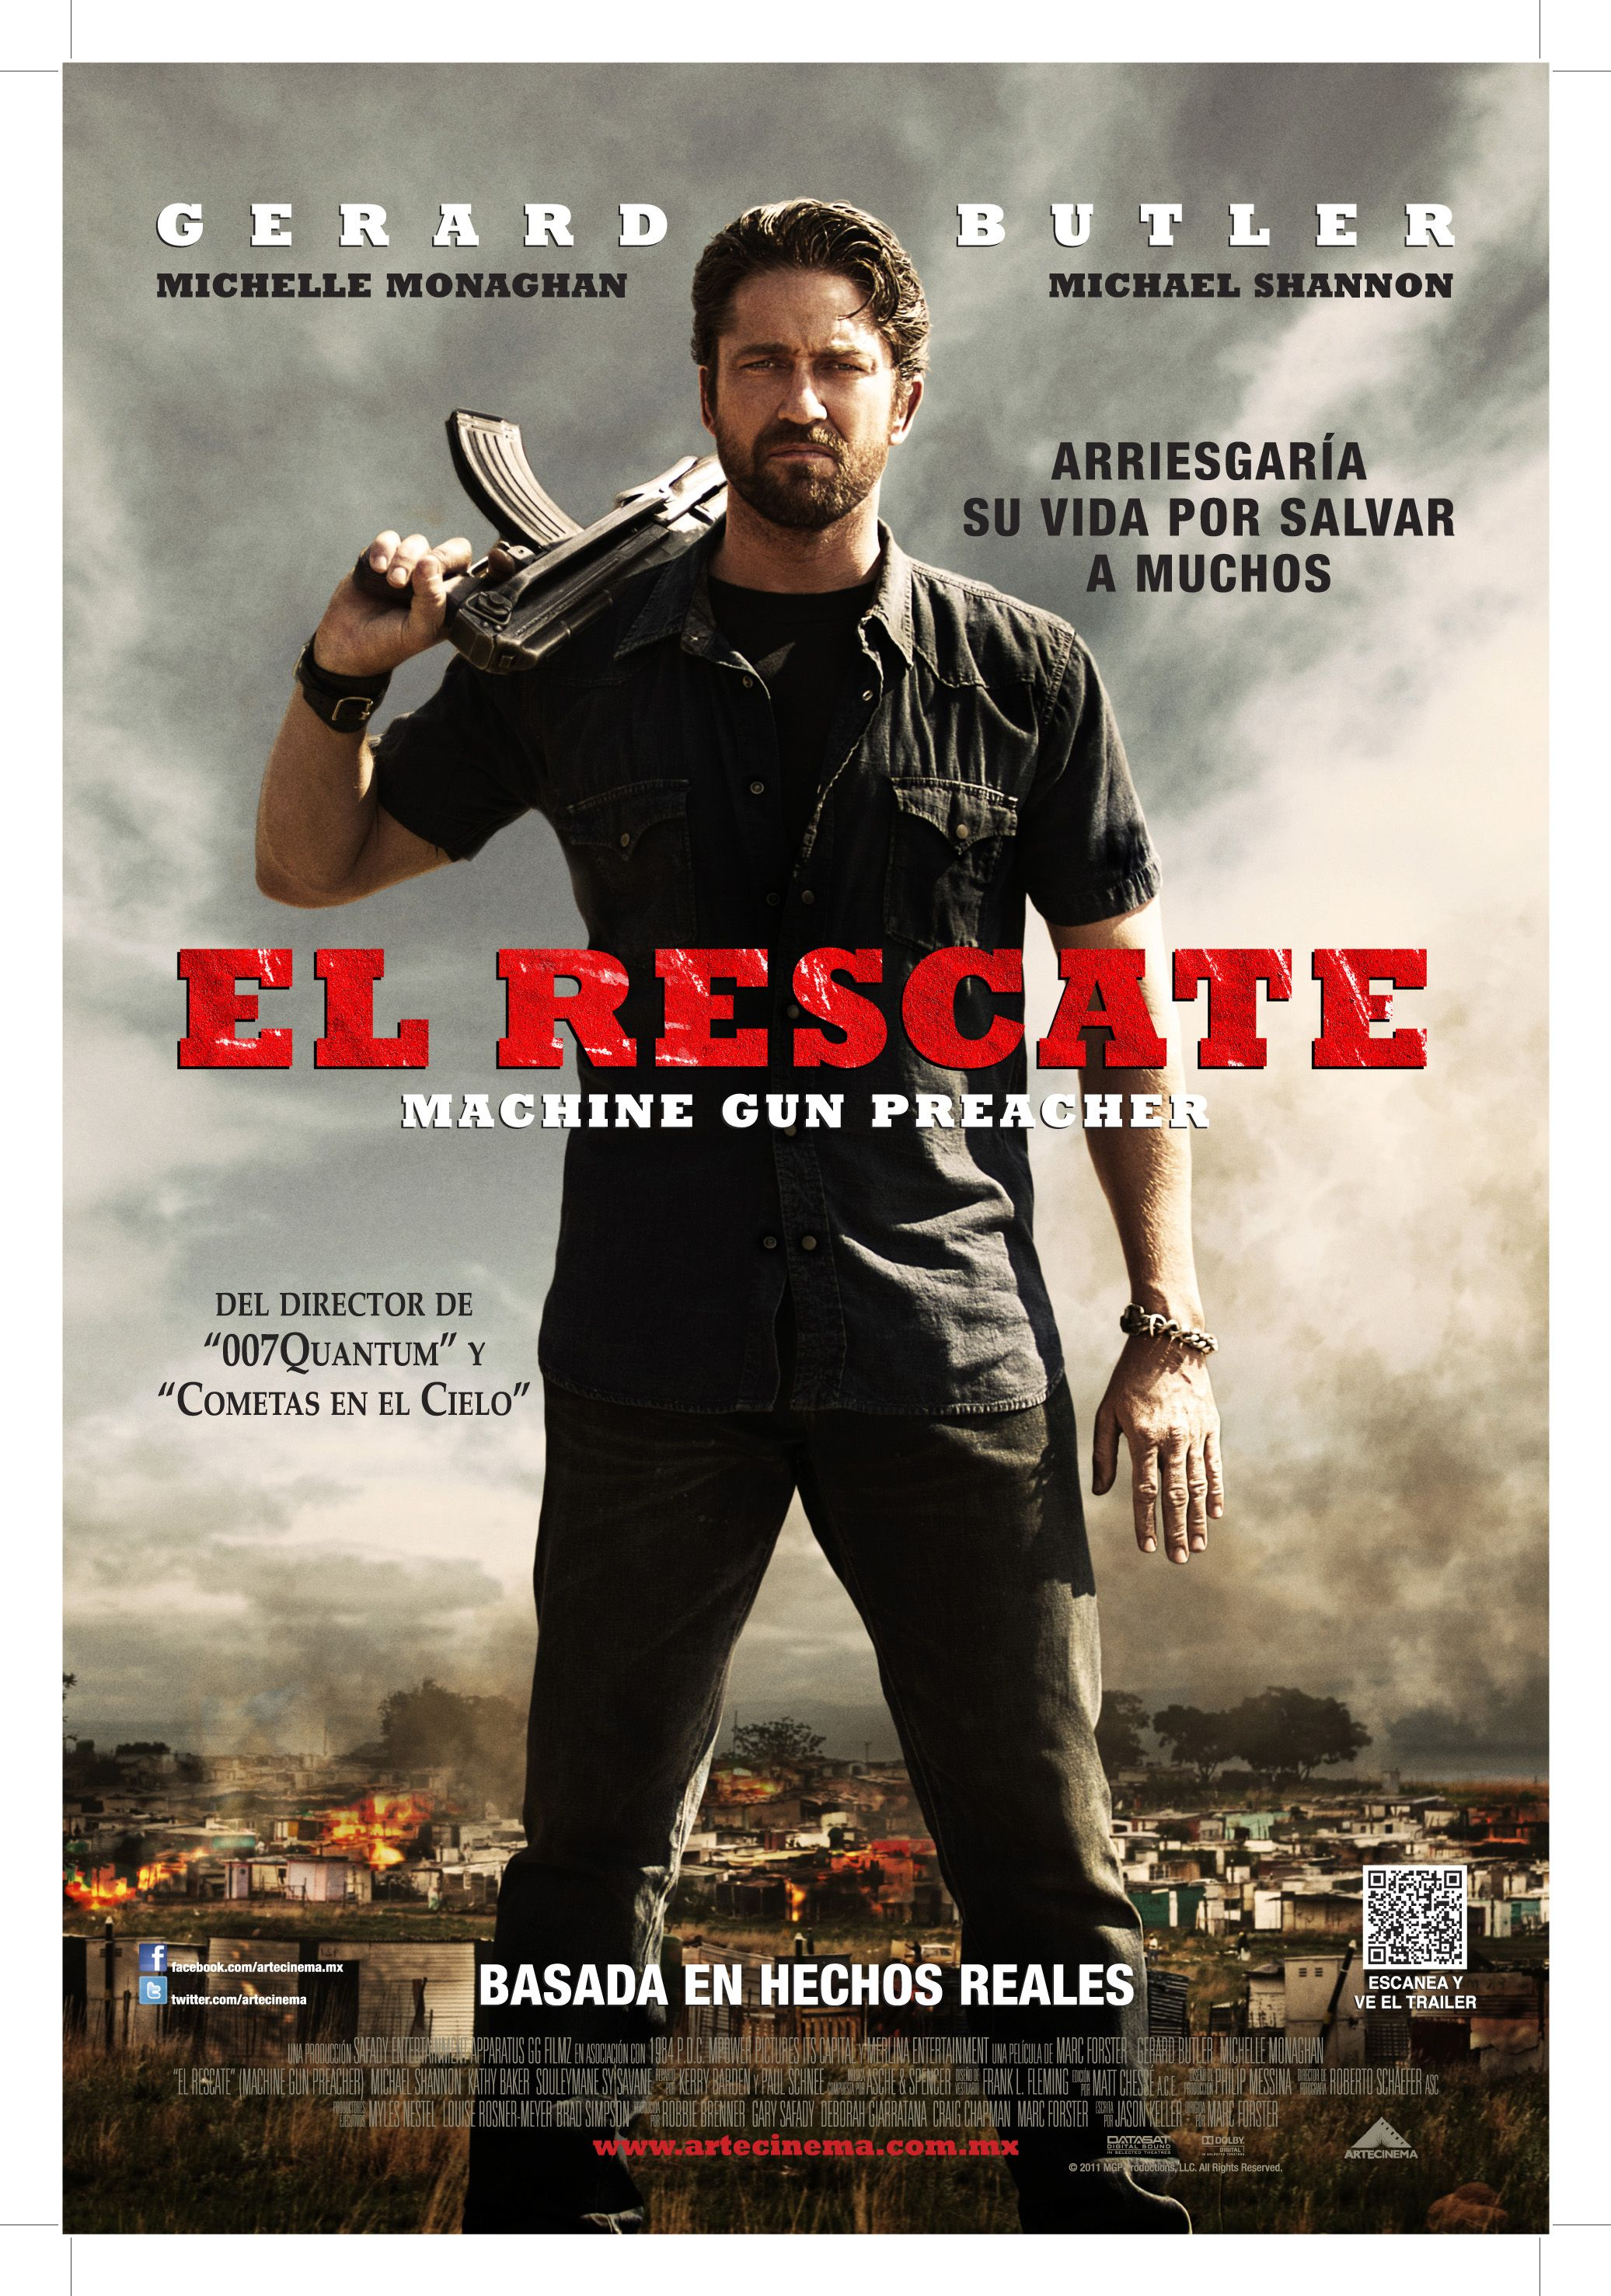 El Rescate Machine Gun Preacher Movie Posters Movie Posters